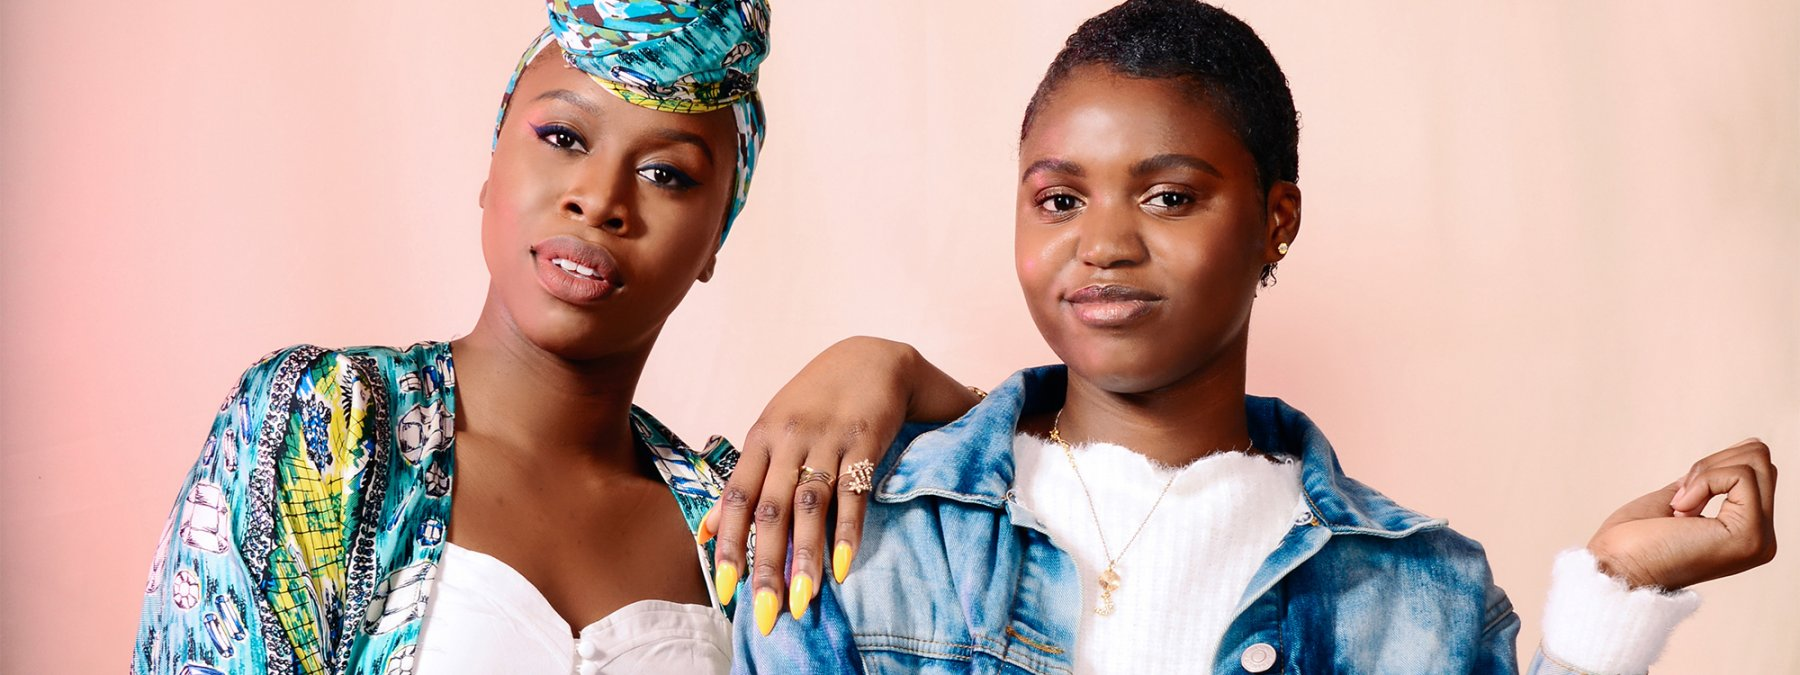 Moshoodat Sanni (left) tells aspiring beauty entrepreneur Mathilda Bruny (right) what it takes to go from dreaming to doing.